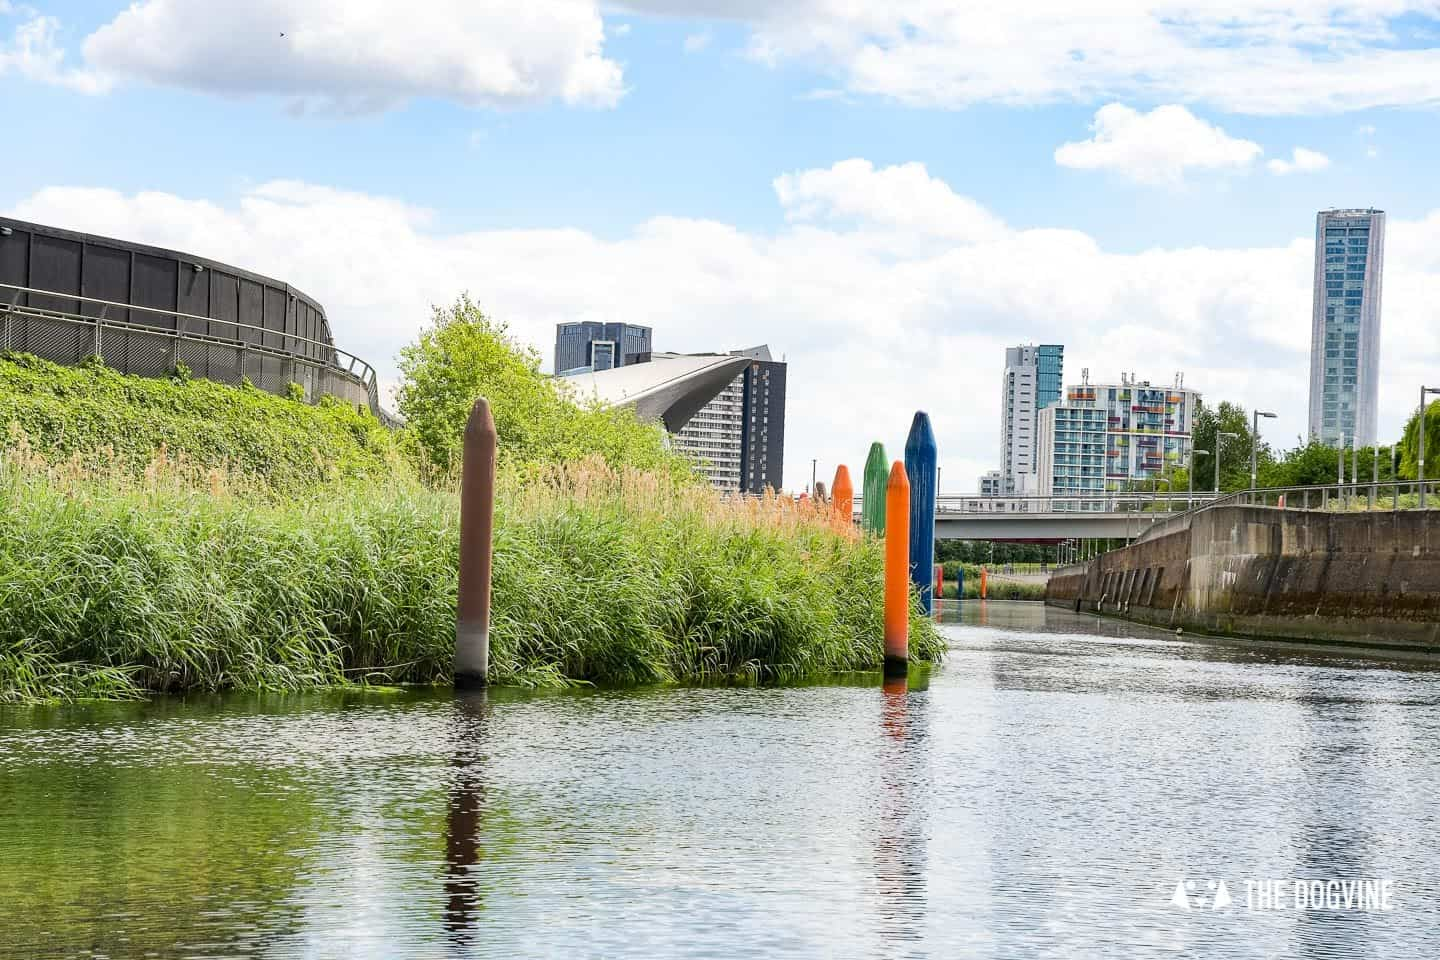 Queen Elizabeth Olympic Park Dog-friendly Boat Tours London - Lee and Stort 8